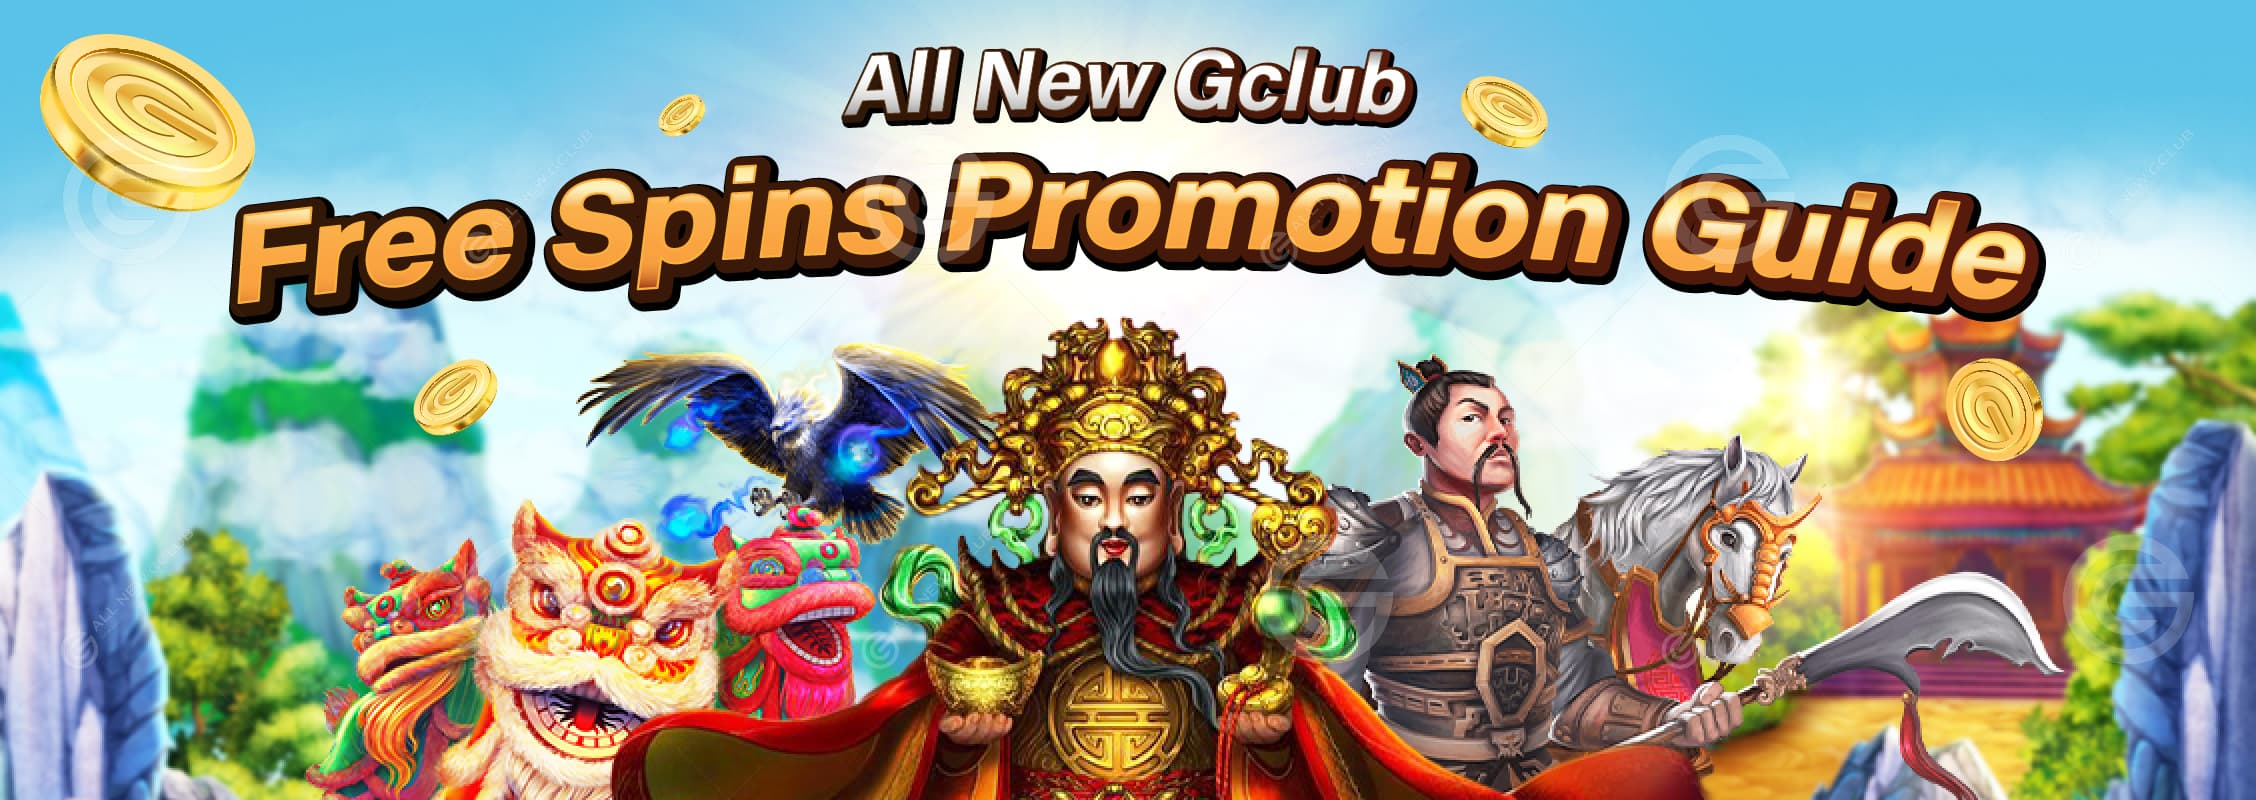 providers/free-spins-guide/